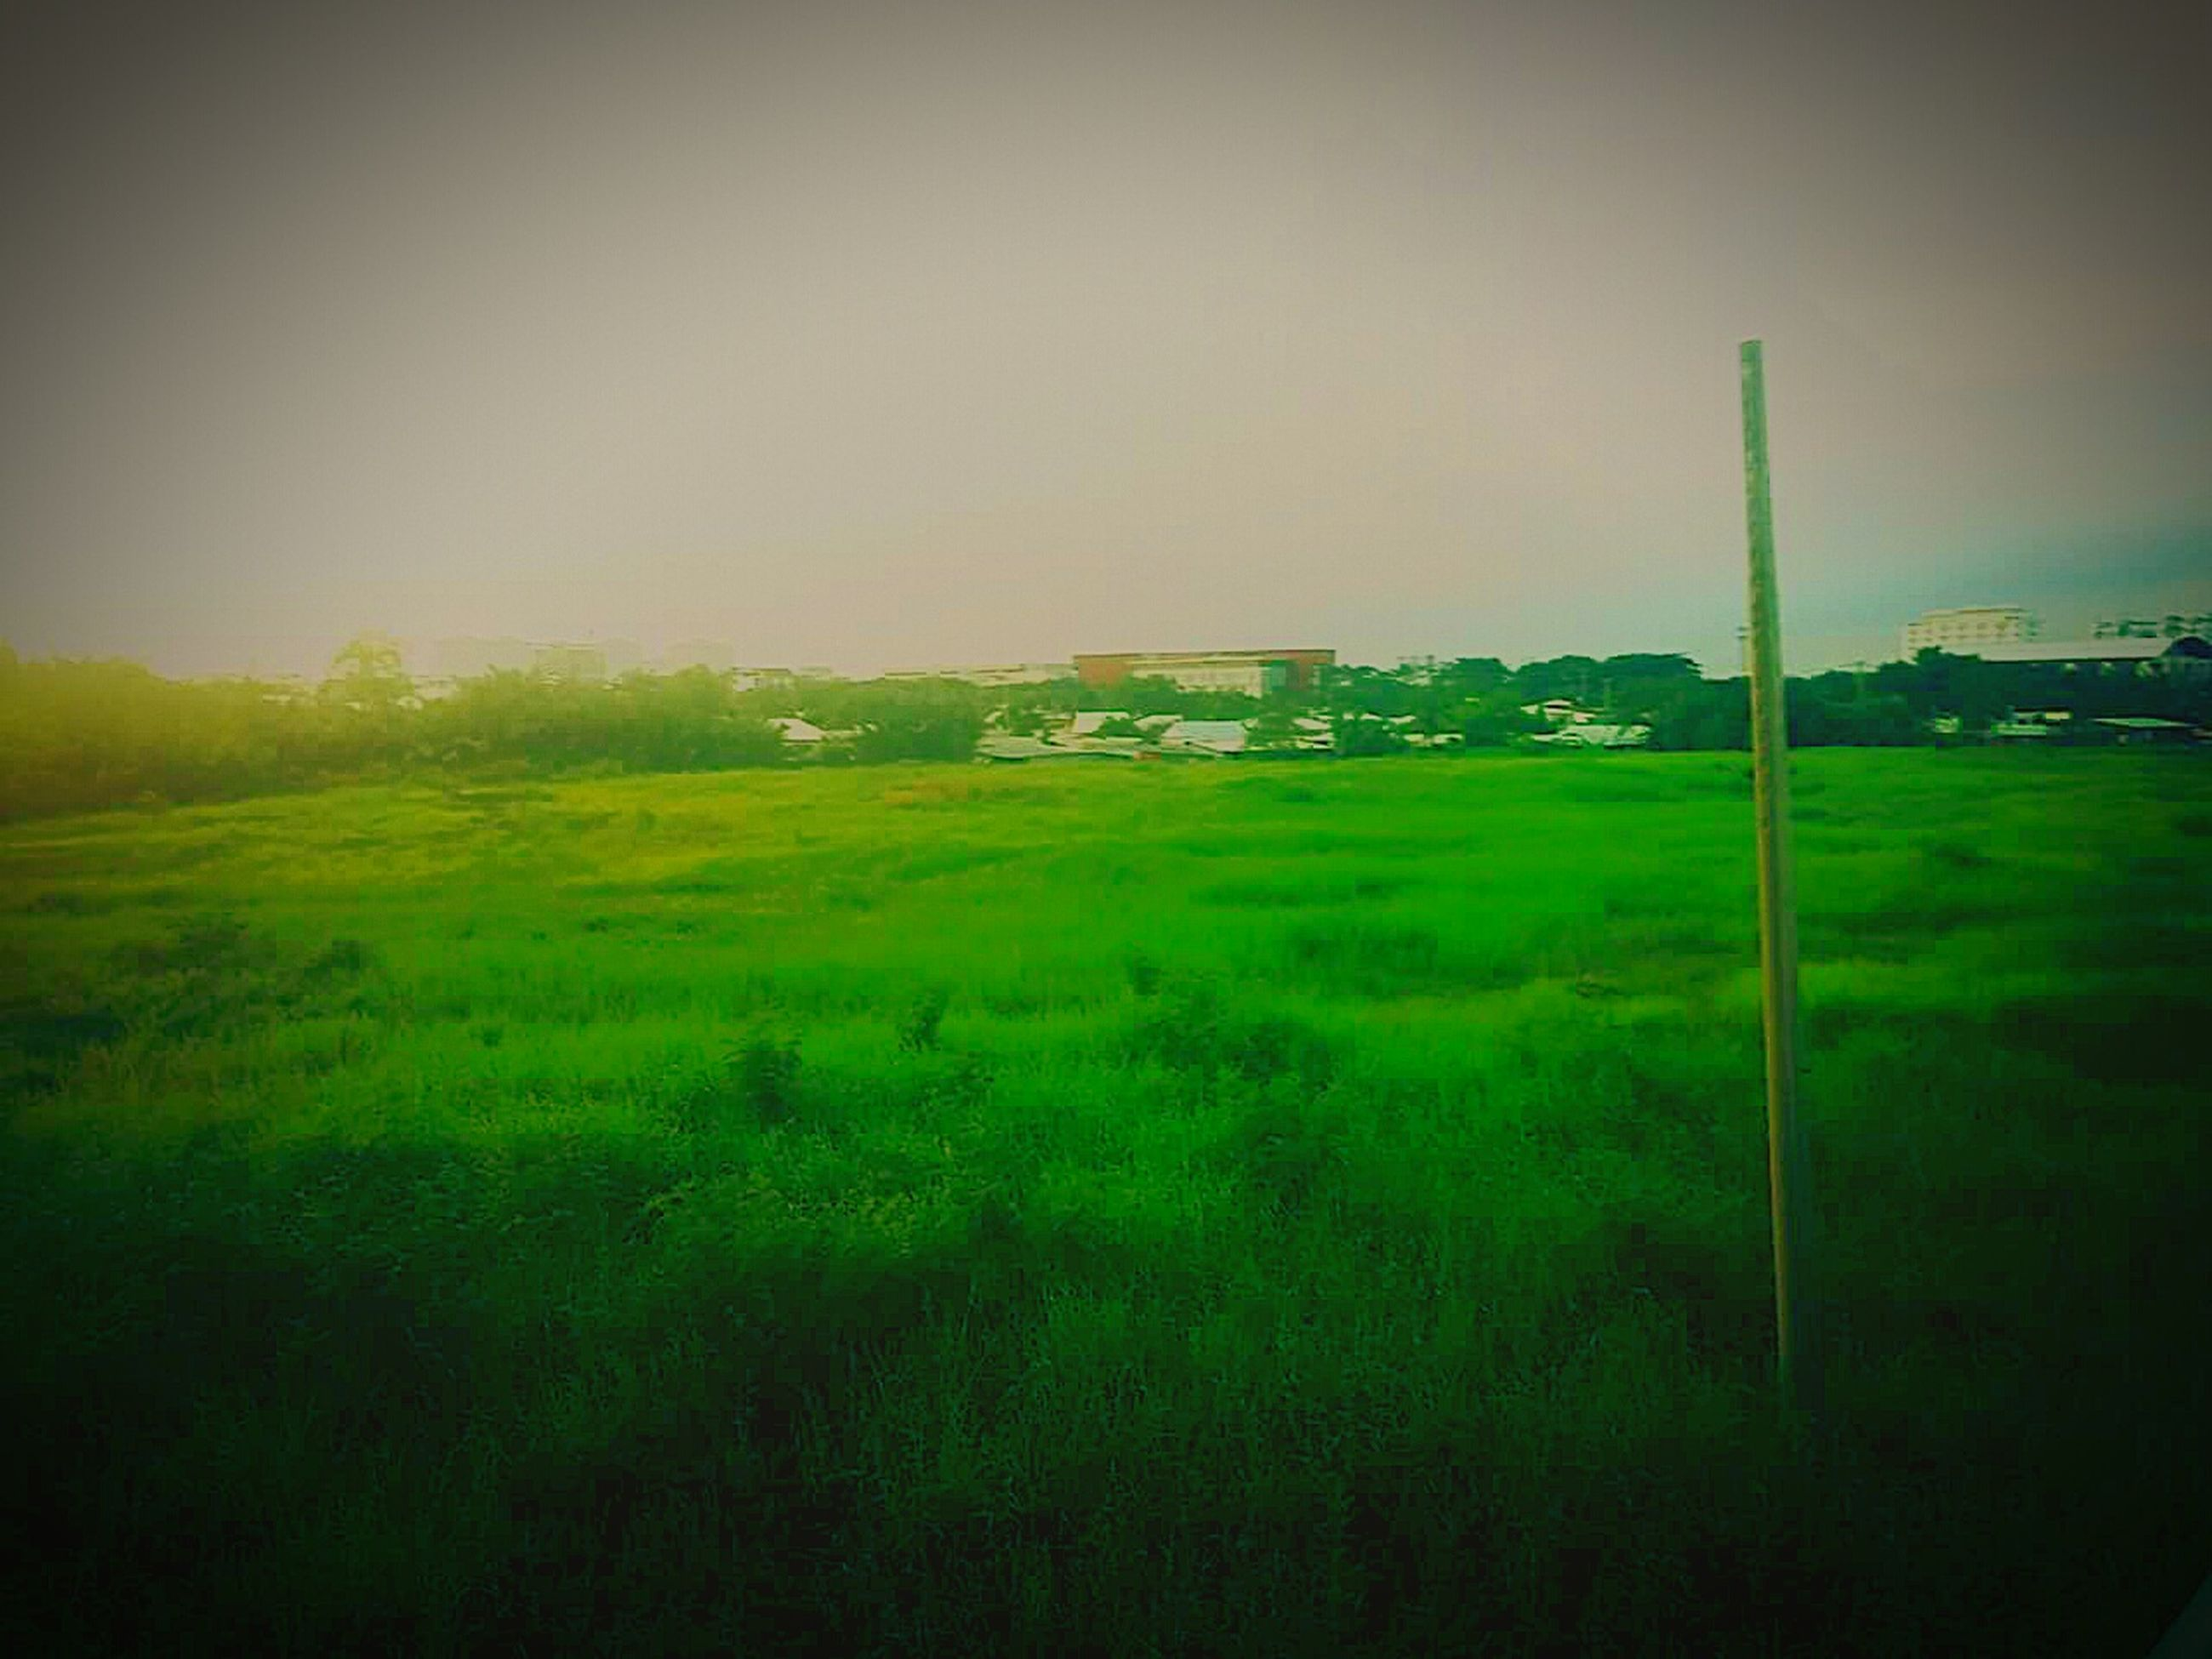 grass, field, green color, grassy, built structure, building exterior, architecture, landscape, clear sky, copy space, tranquility, nature, sky, tranquil scene, growth, house, outdoors, no people, beauty in nature, day